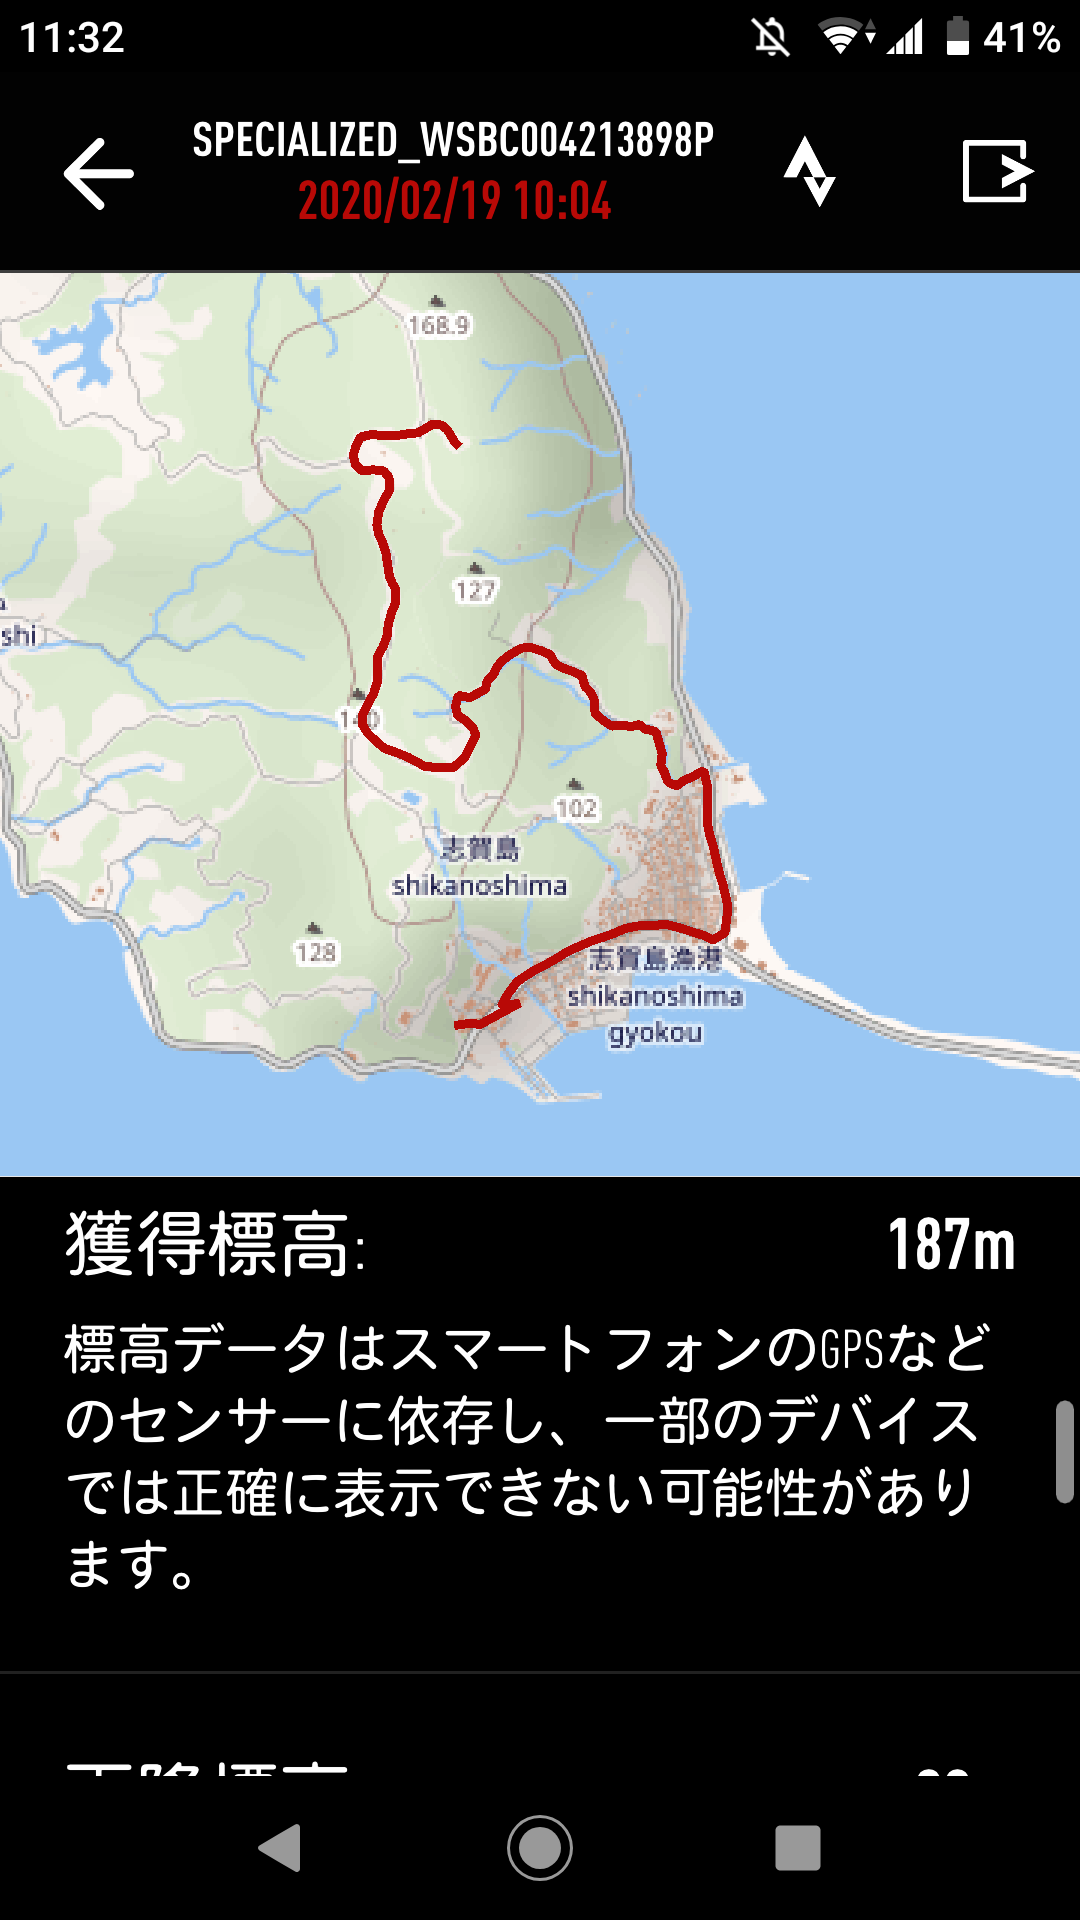 SPECIALIZEDのe-BIKE (クリ..._b0282021_09482856.png